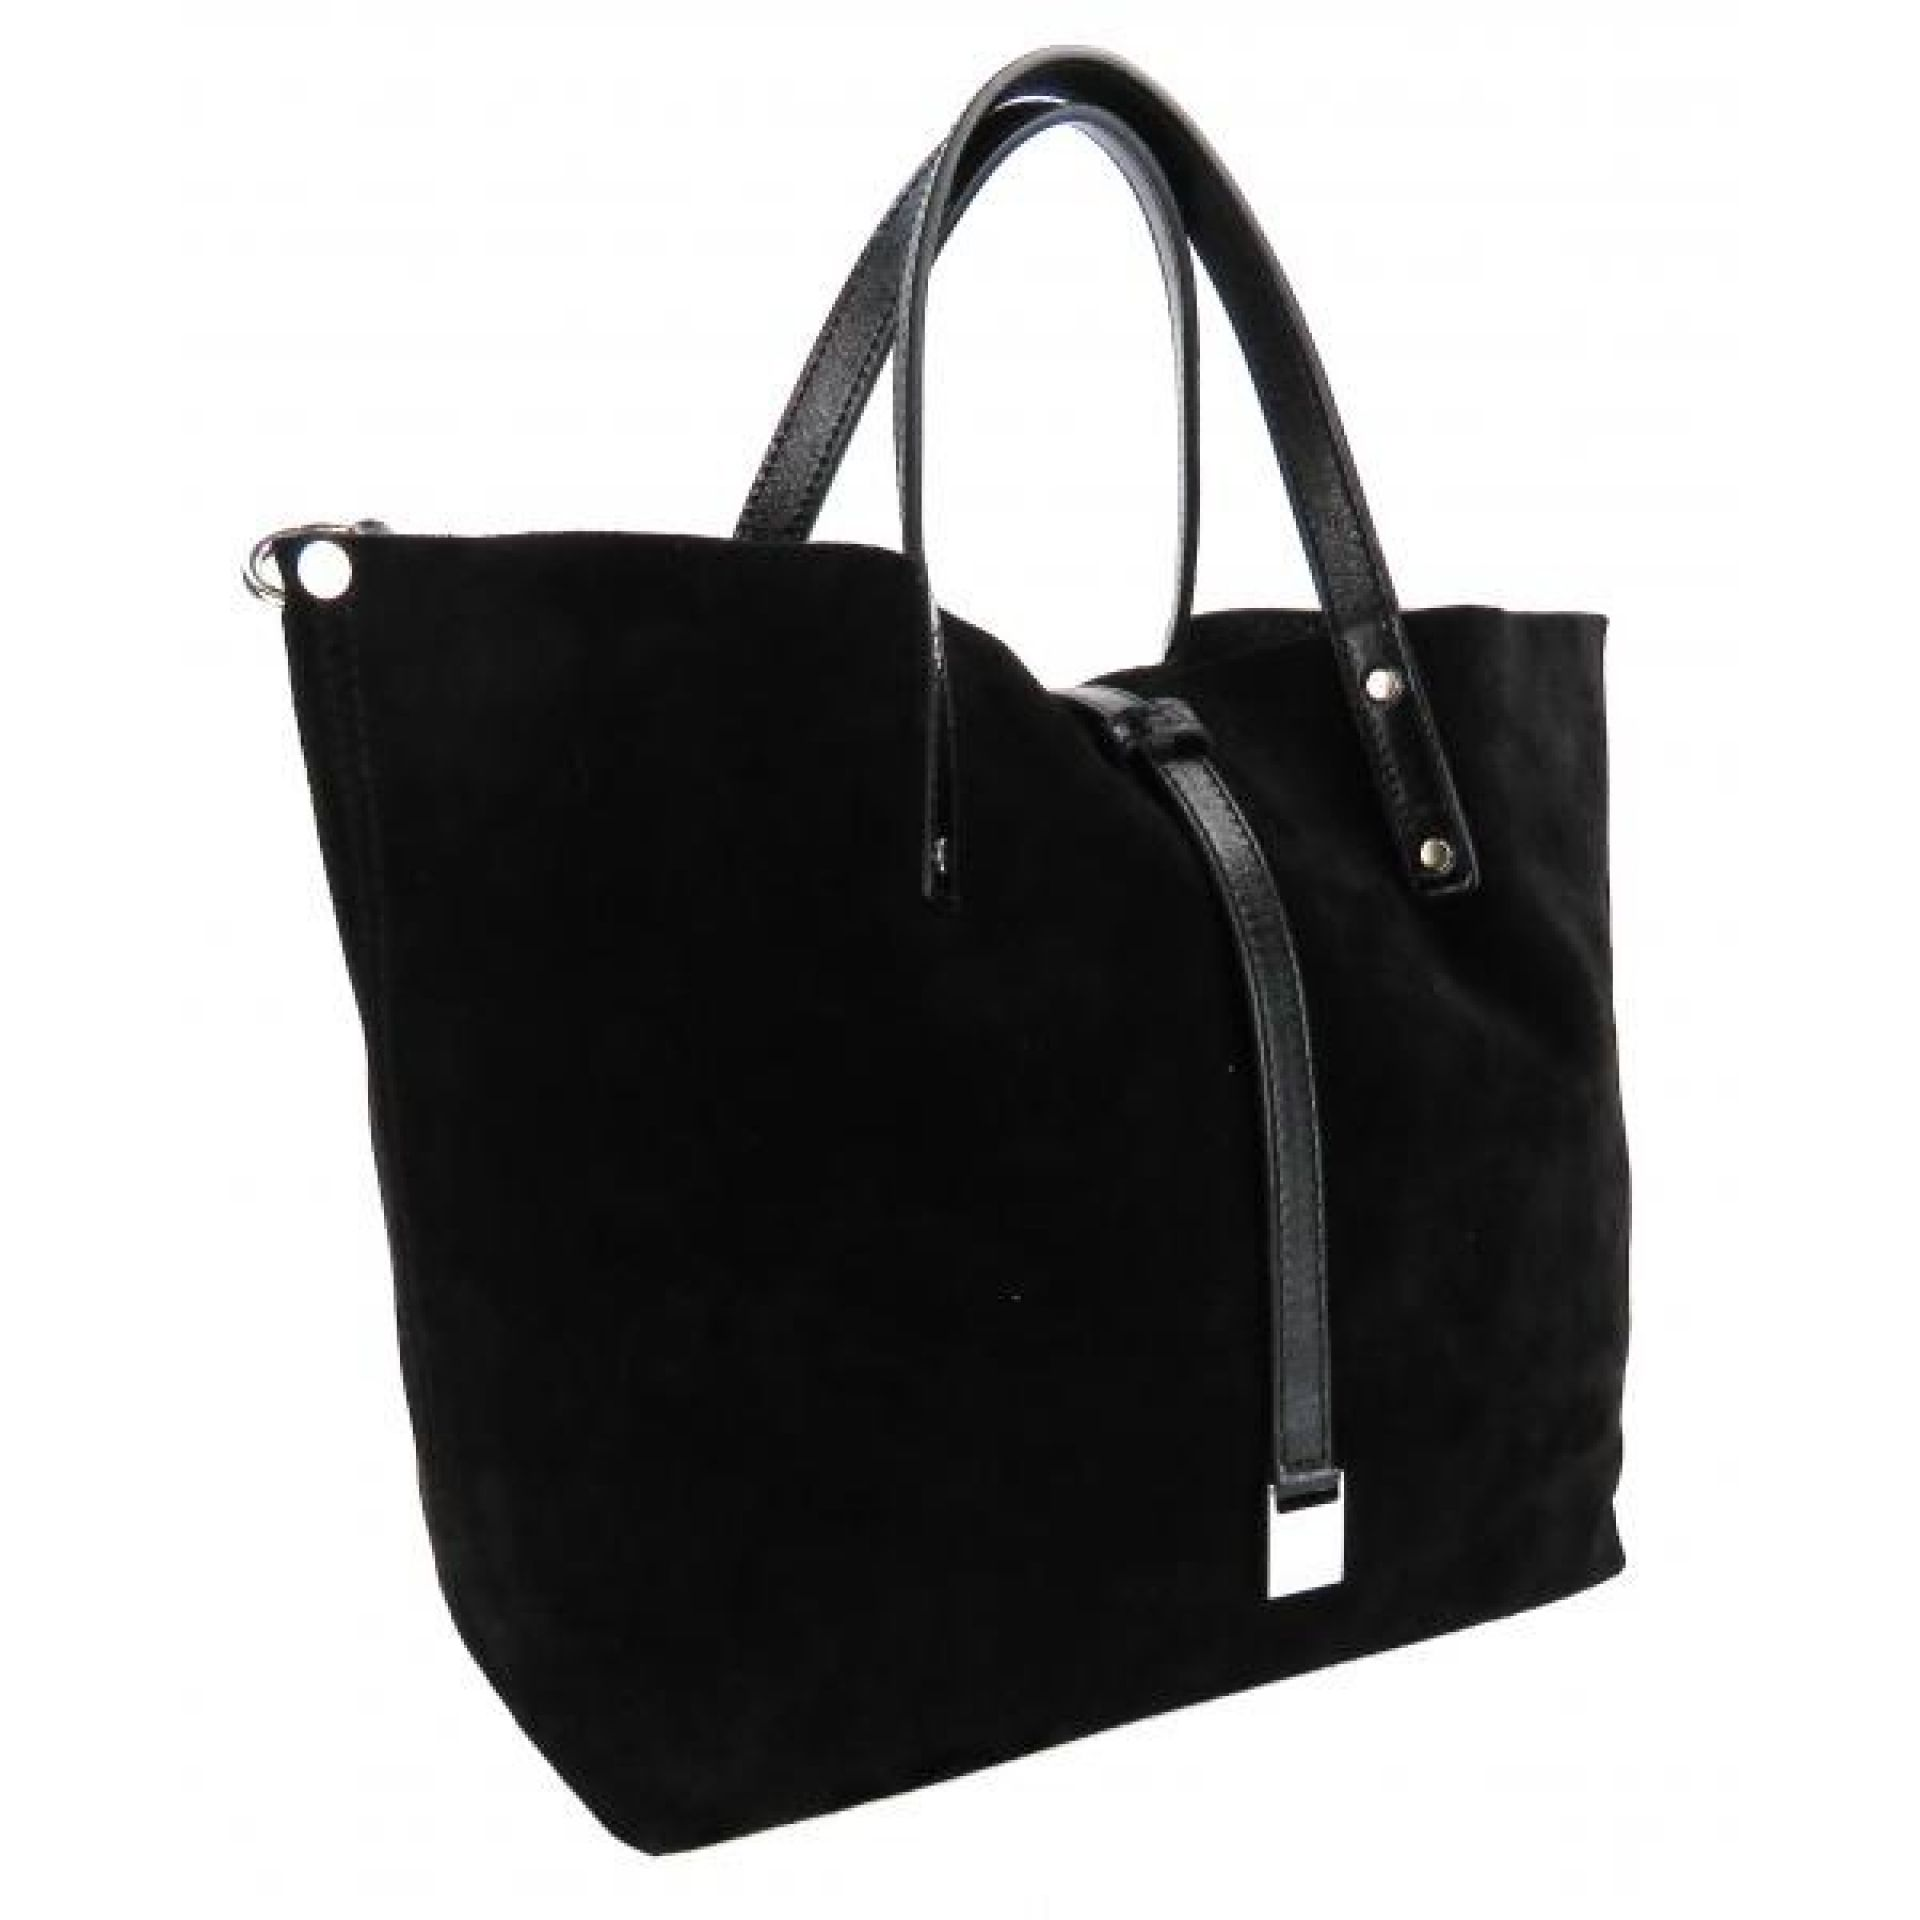 Tiffany & Co Black Suede and Black Leather Small TRT Reversible Tote Bag